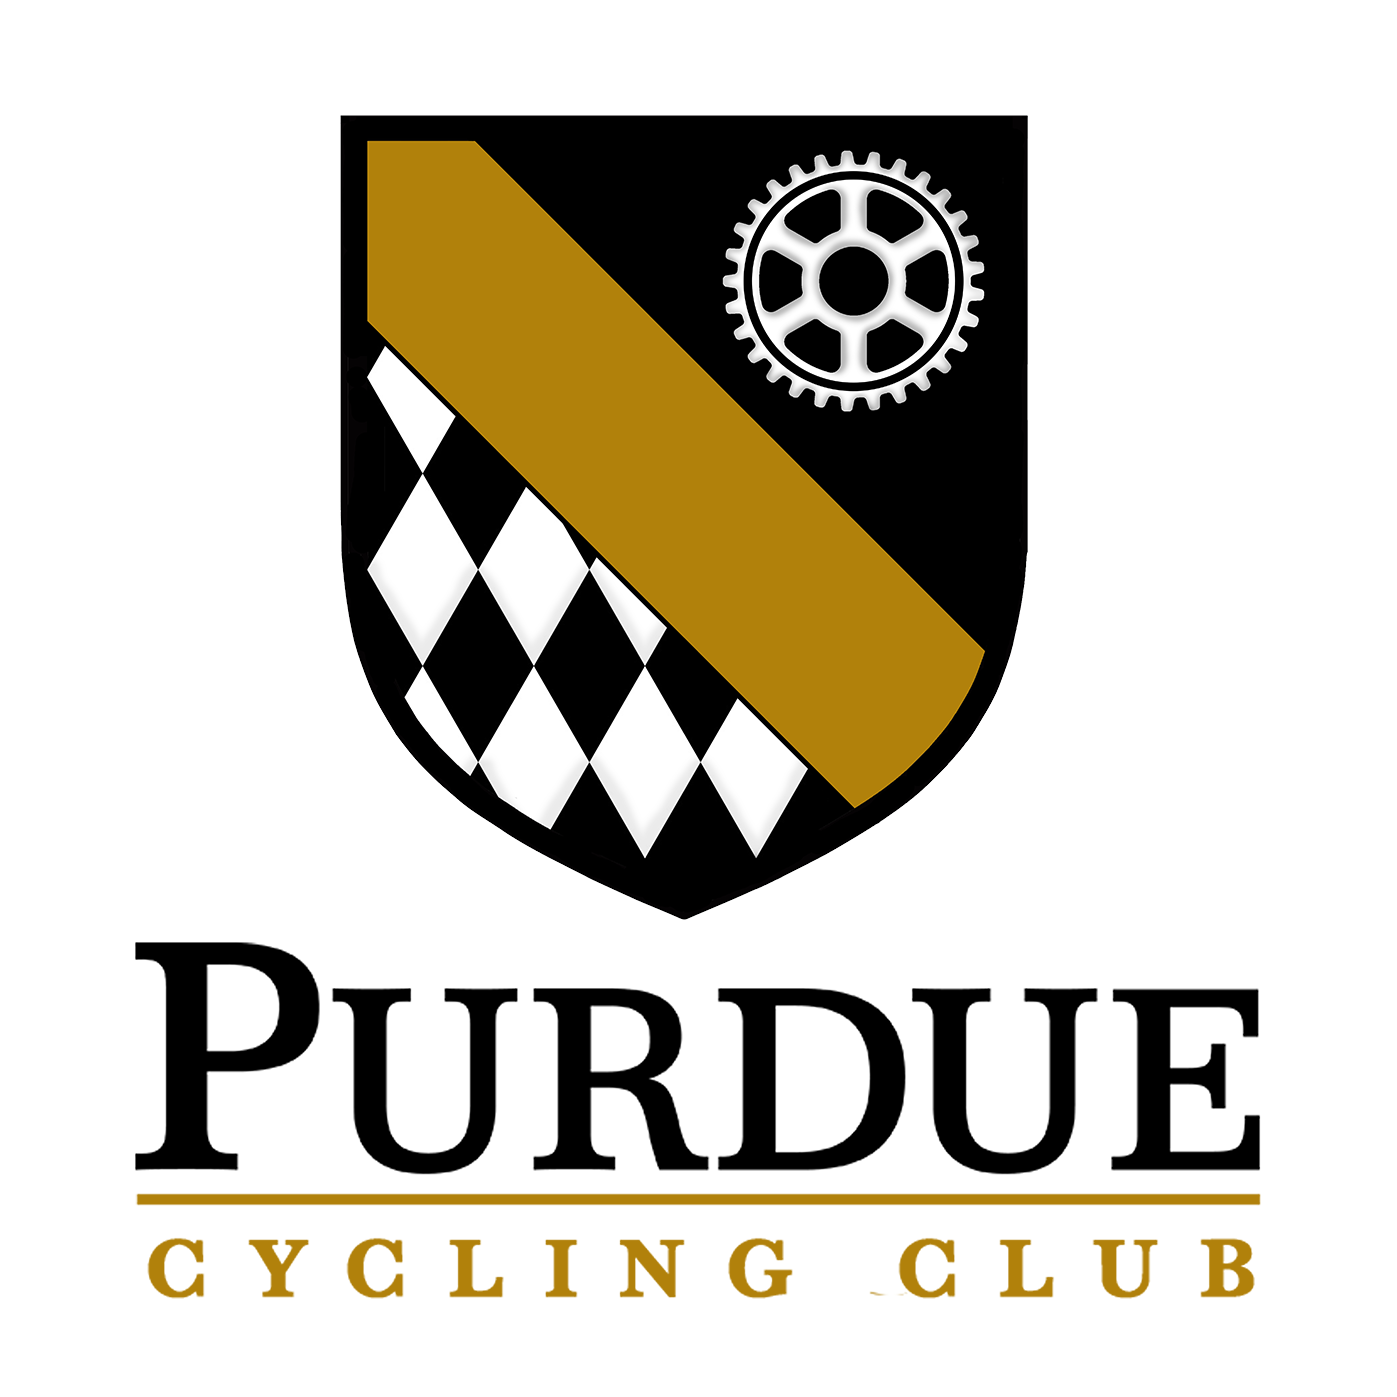 Purdue Cycling Club